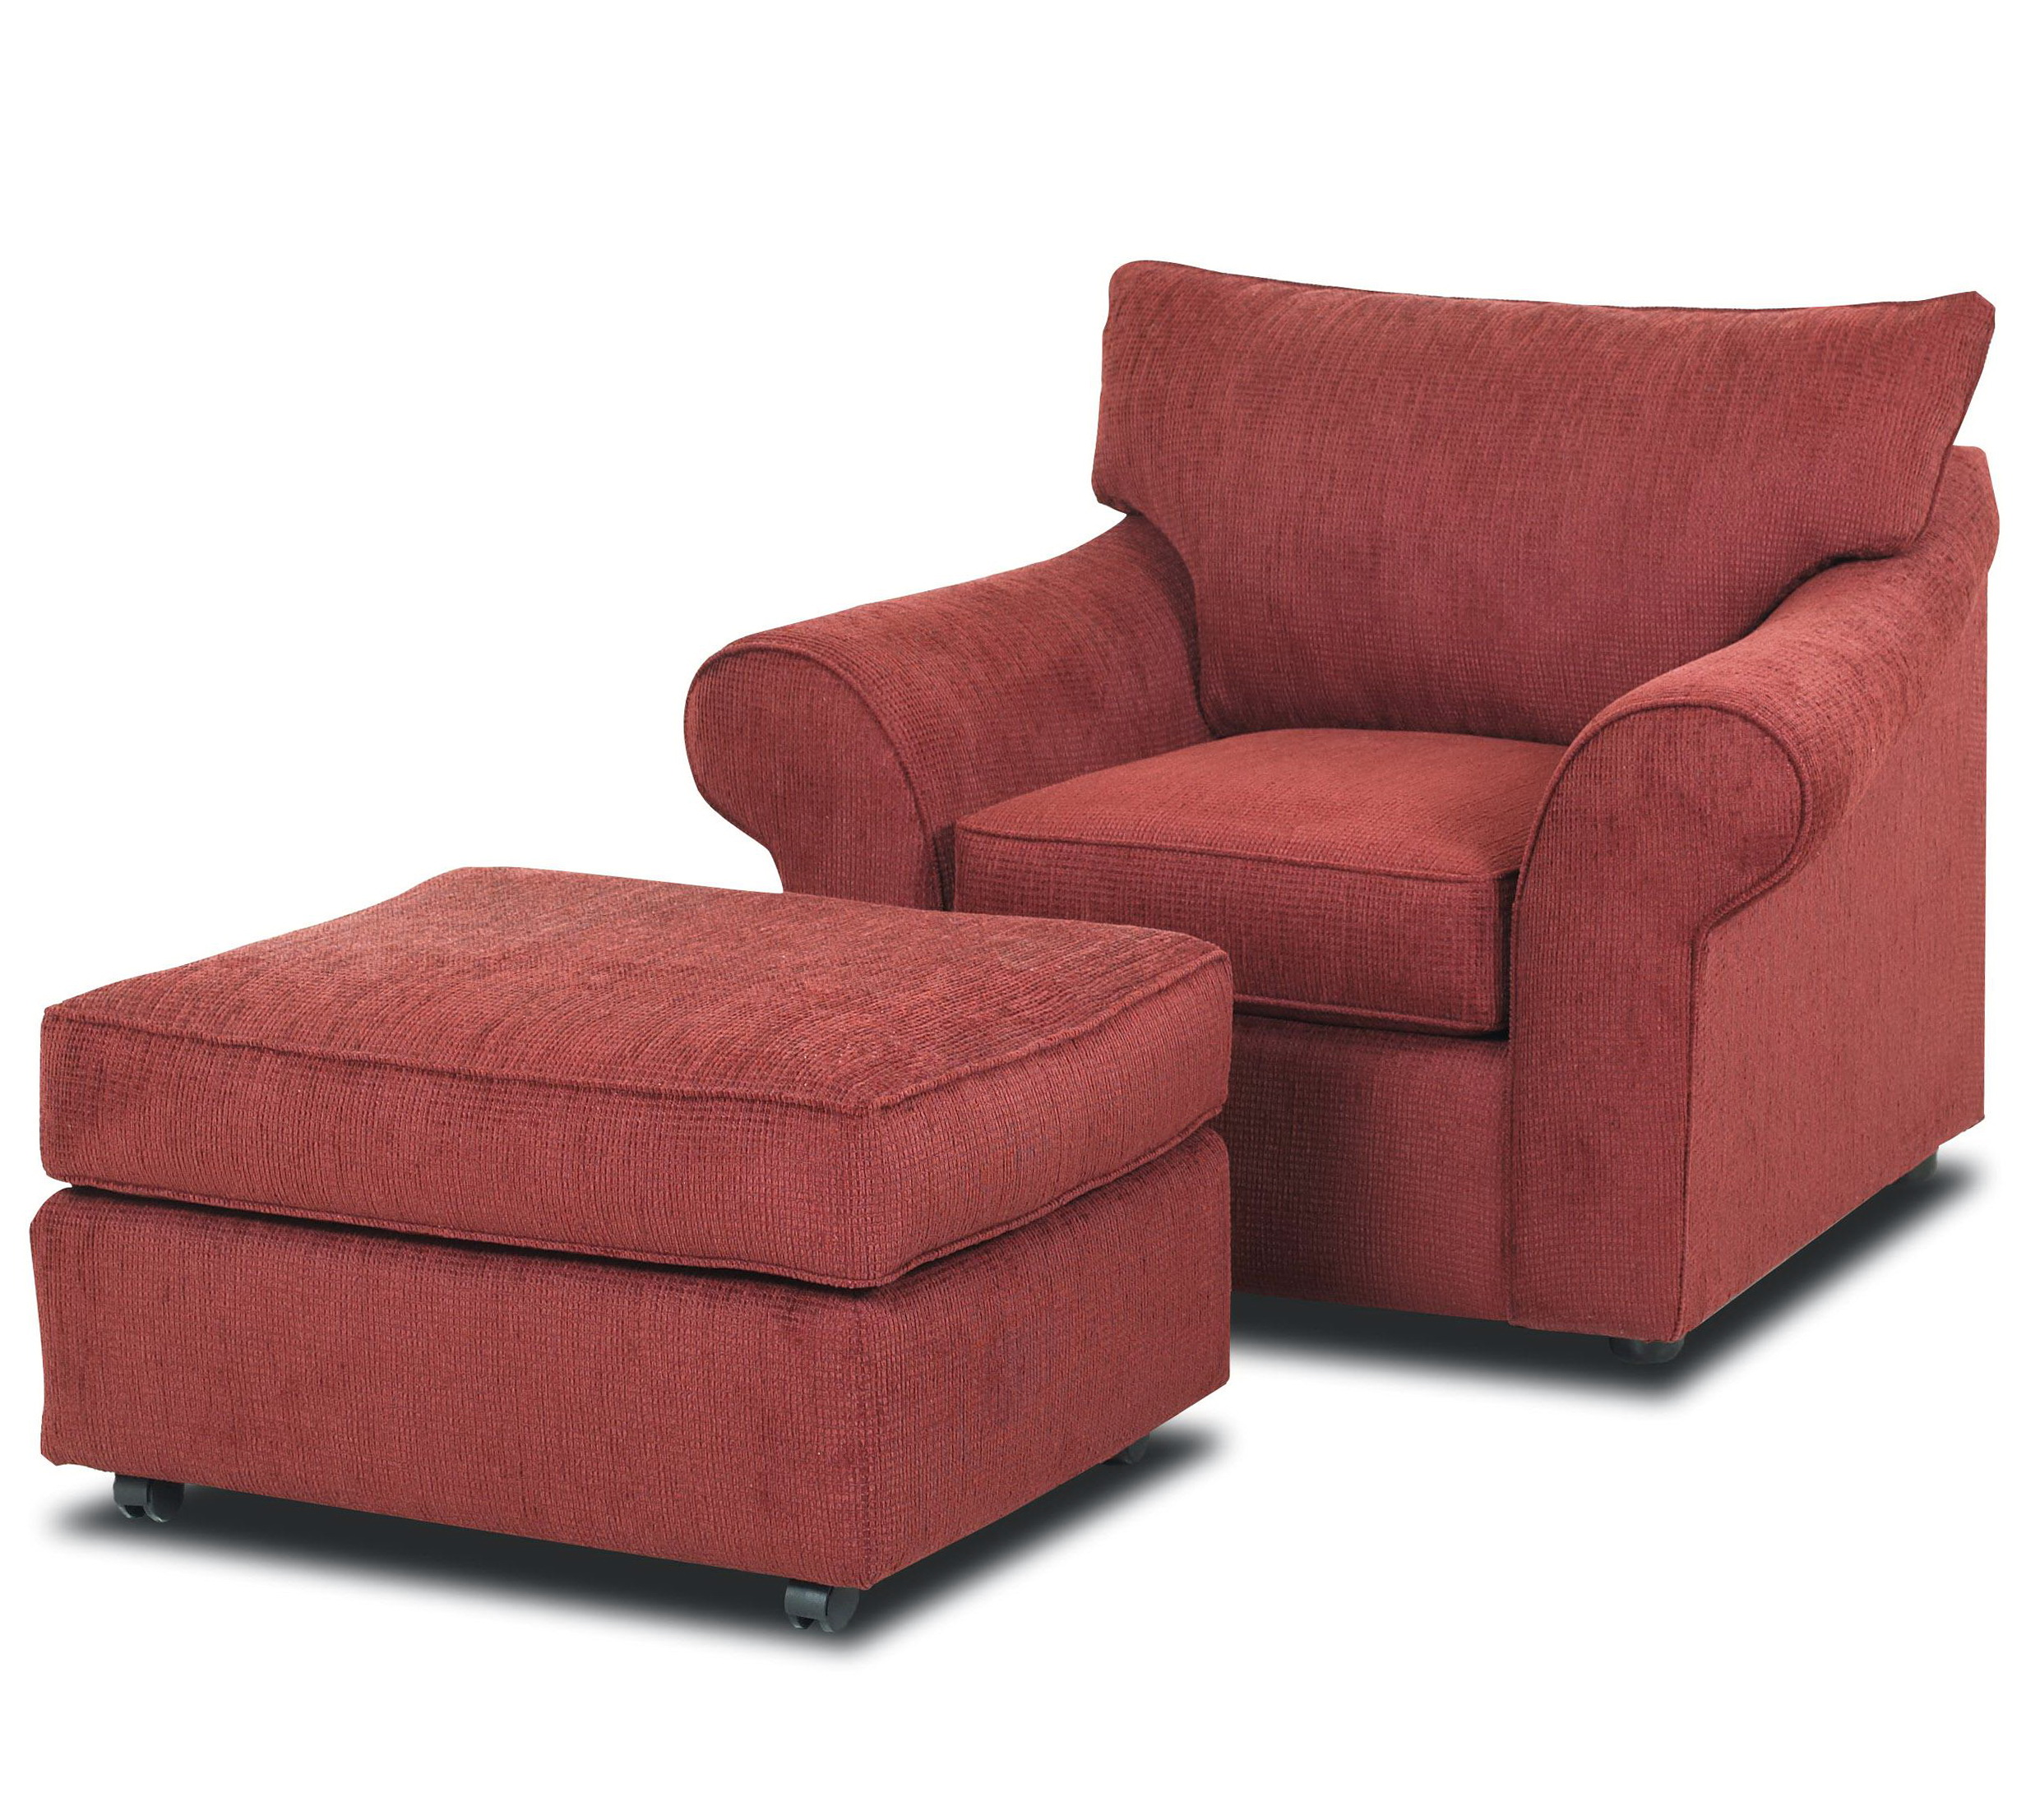 Oversized Chair And Ottoman Sets Chair And Ottoman Sets Cheap Home Design Ideas